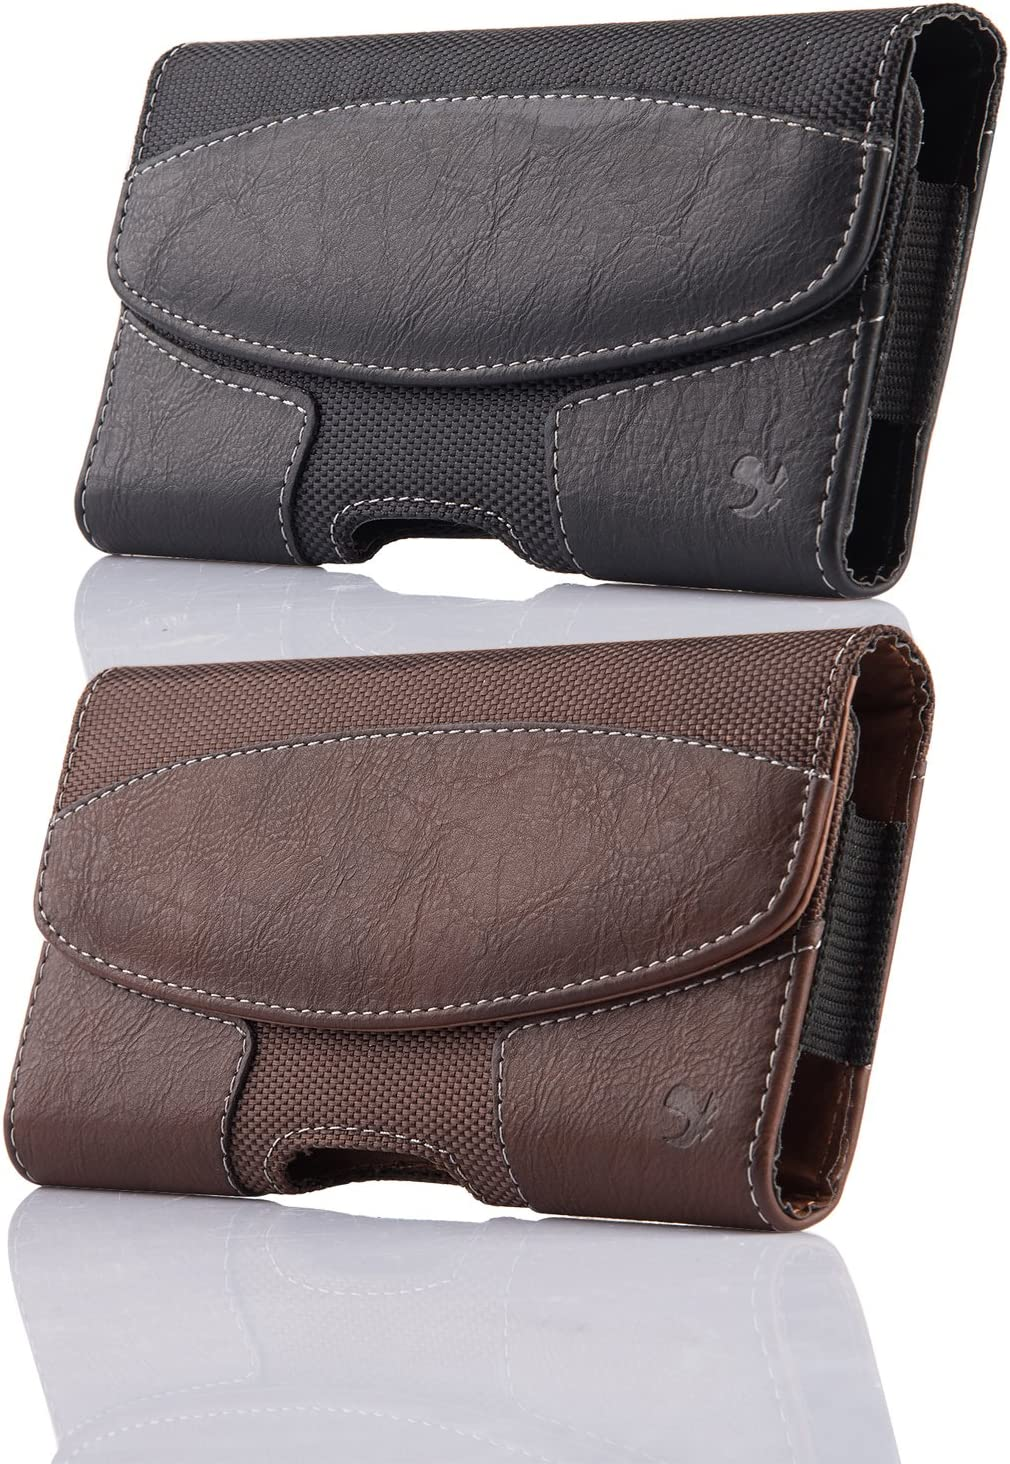 2 Pack Holster Pouch Case for iPhone XR iPhone 11 Pro Max , kiwitatá Horizontal Leather Belt Clip/ Loops Case Pouch [Magnetic Closure] for iPhone Xs Max iPhone 7 Plus 8 Plus (Black/Brown)